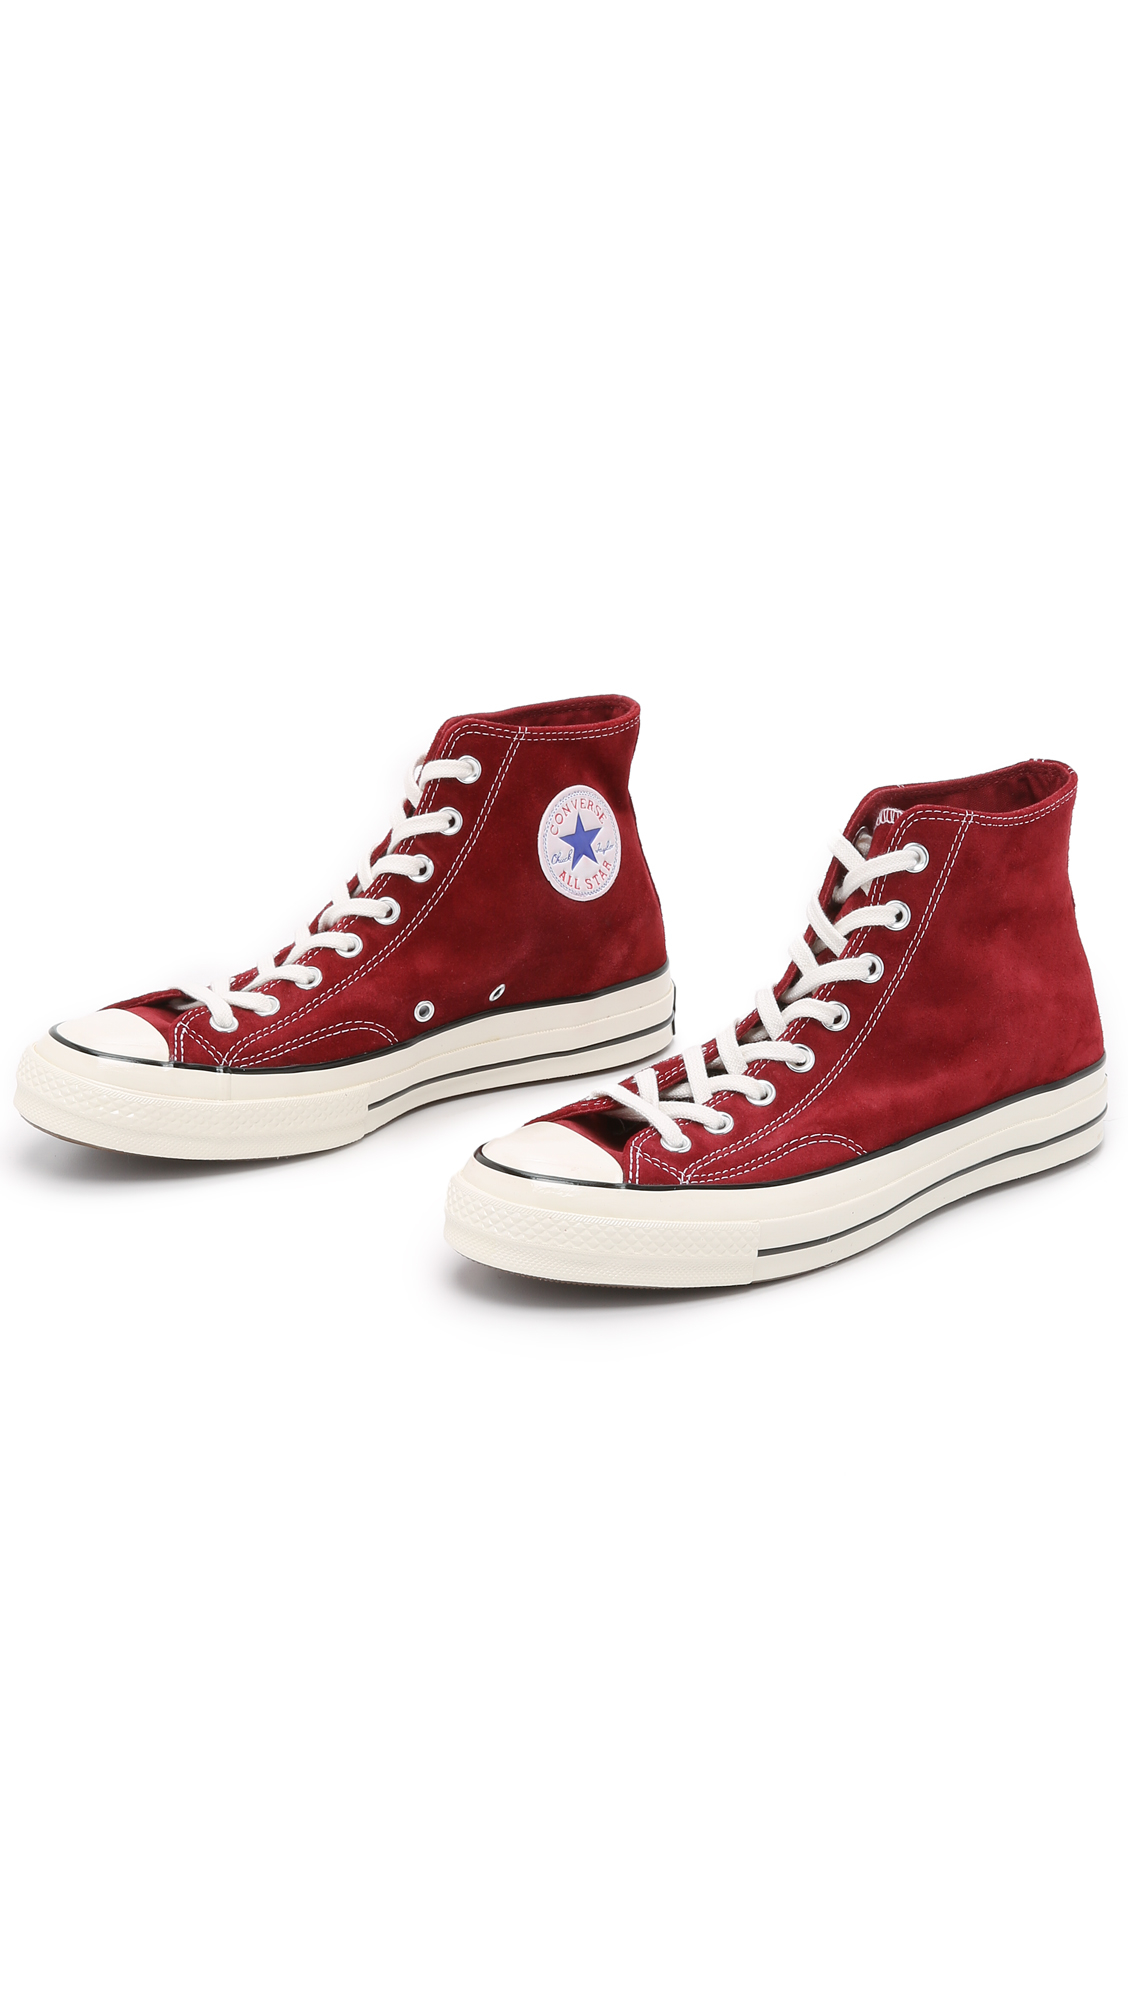 Lyst - Converse Chuck Taylor All Star  70s Suede High Top Sneakers ... 213211445